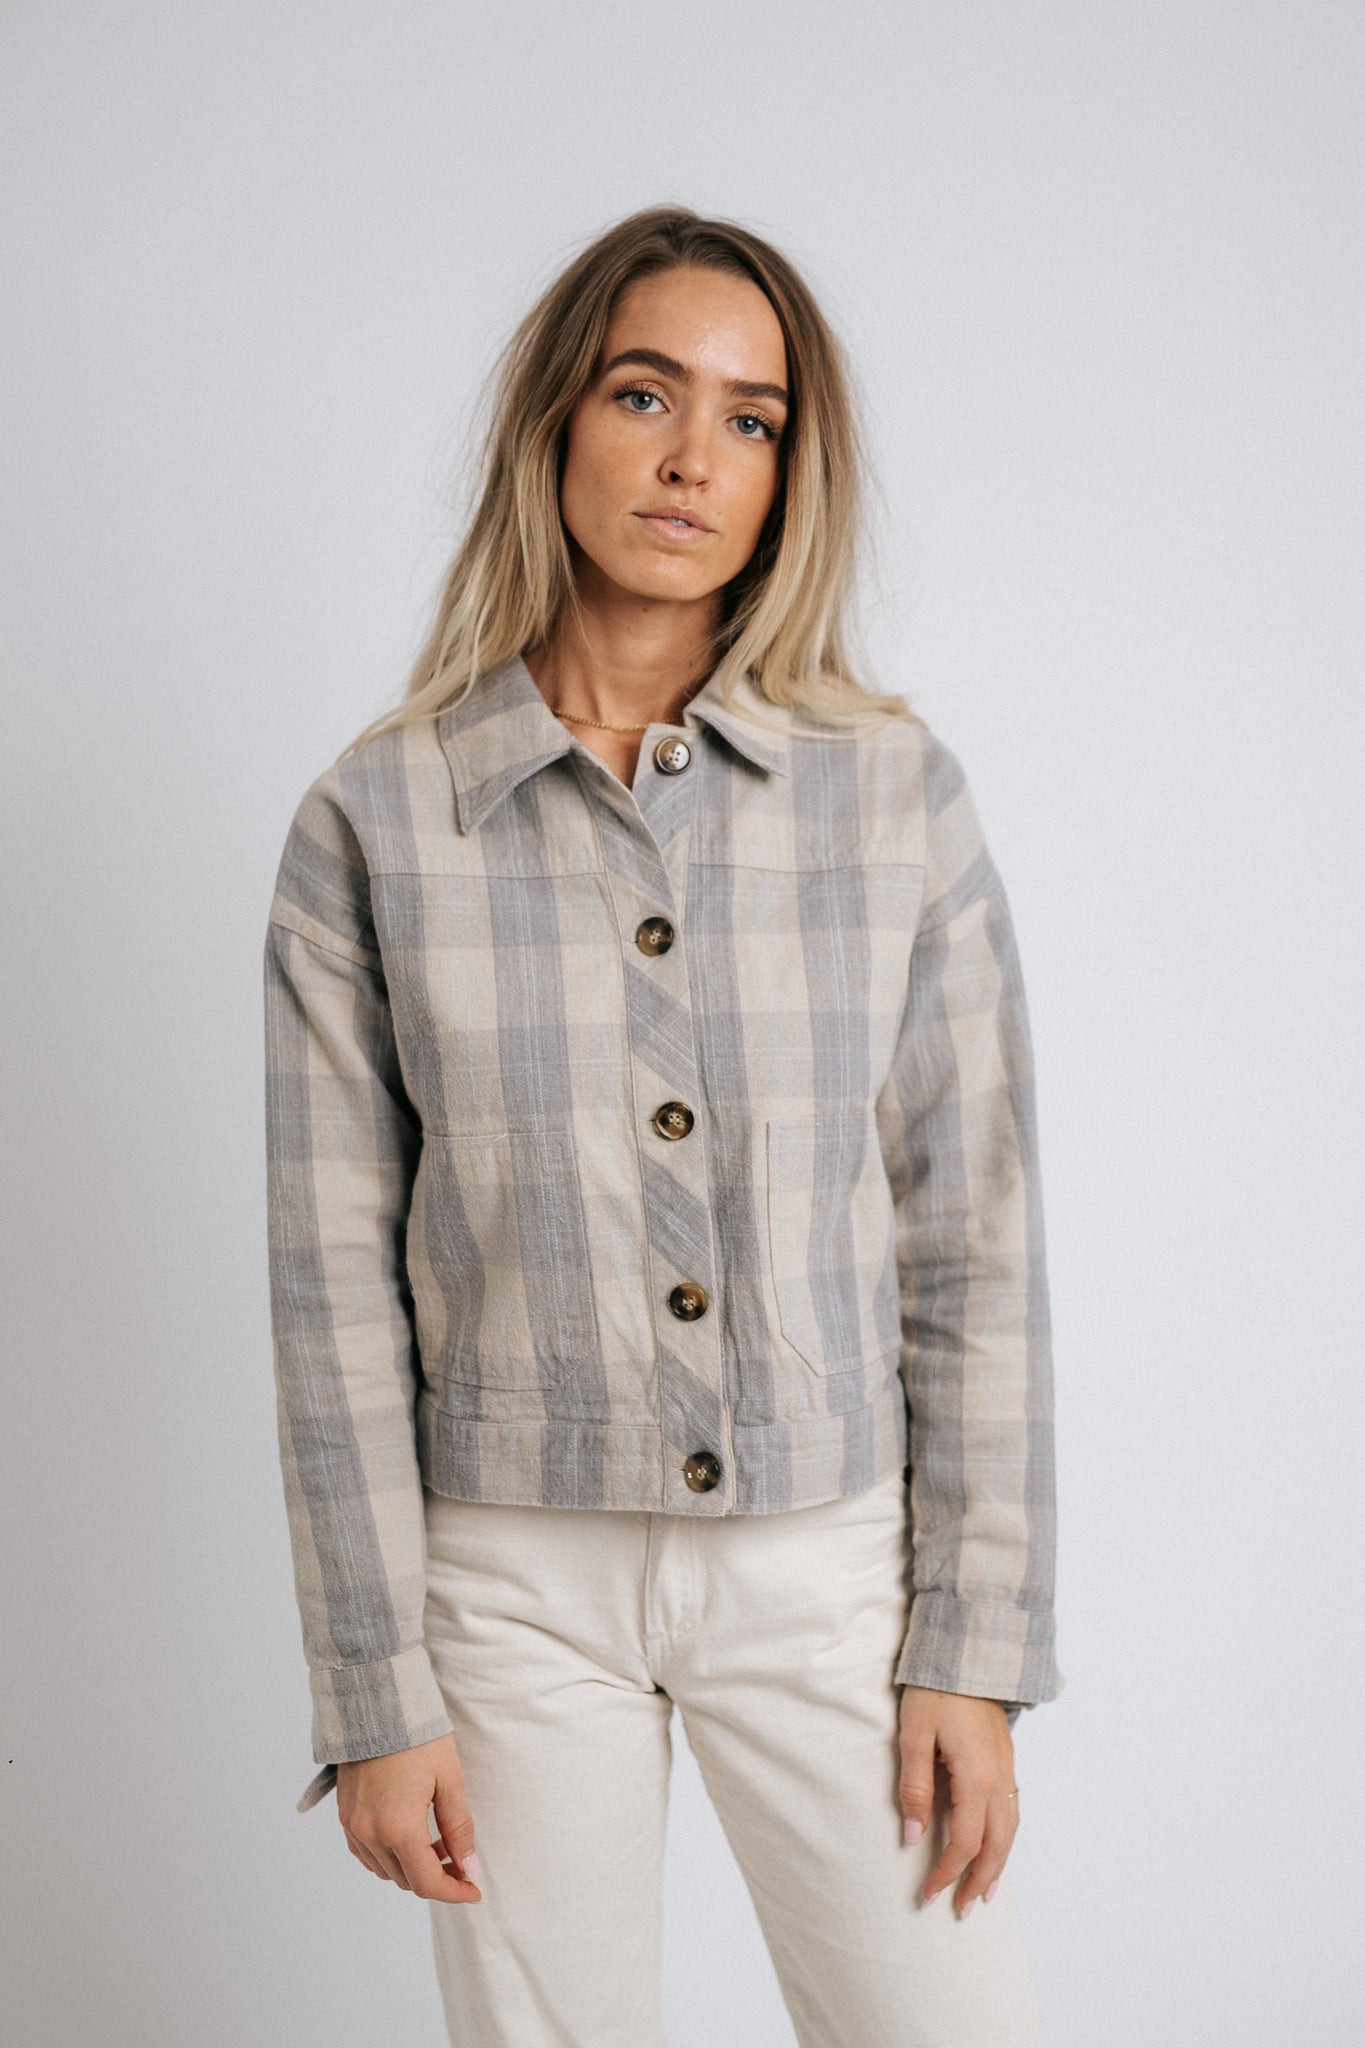 The Sage Plaid Jacket